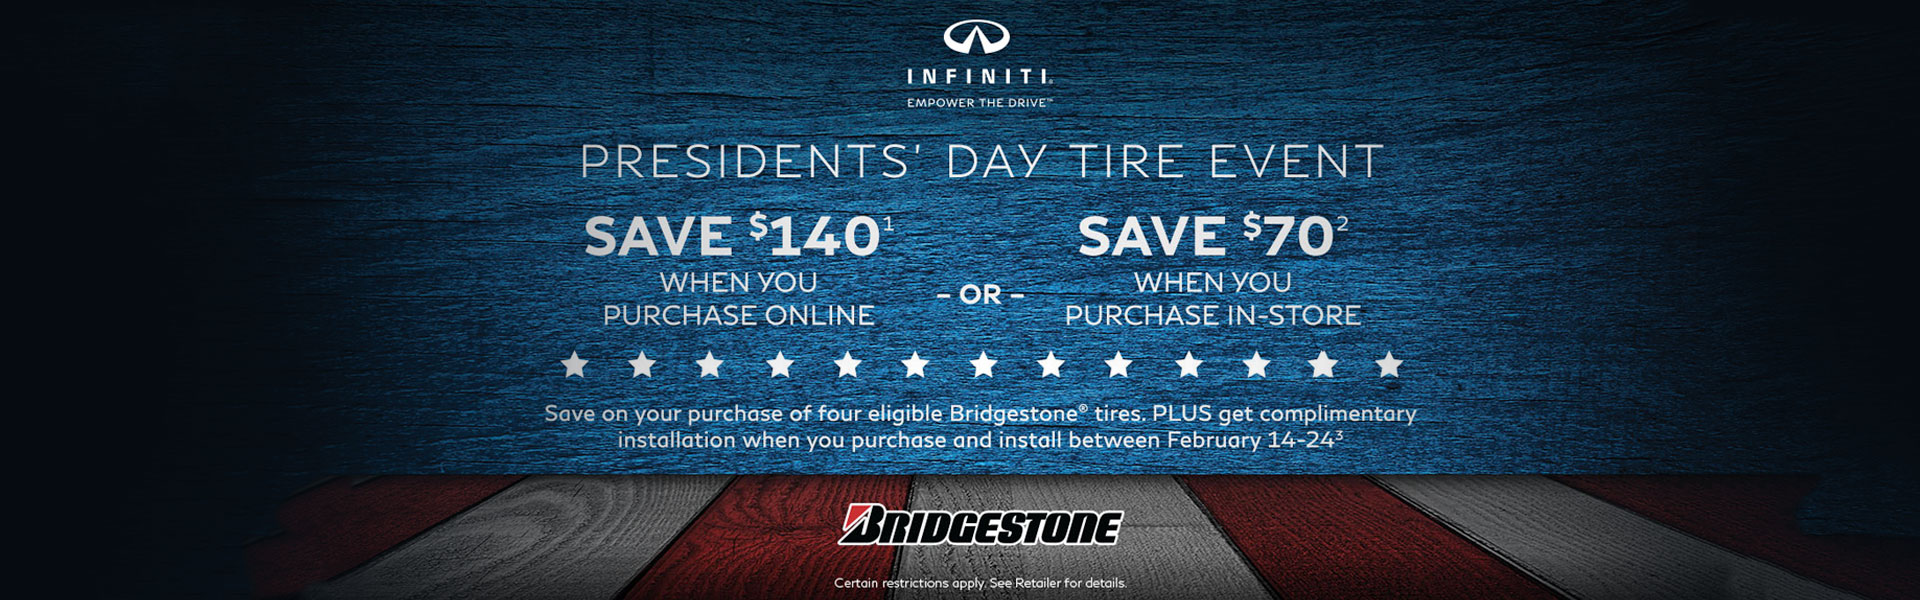 Certain restrictions apply. Bridgestone Tire $140 Rebate: Offer eligible on Bridgestone OEM, OEA and WIN tires purchased online through the INFINITI Tire Advantage website only. See participating Retailer for details. Void where prohibited. Ends February 28, 2019. Bridgestone Tire $70 in-store Rebate: Offer eligible on Bridgestone OEM, OEA and WIN tires only. See participating Retailer for details. Void where prohibited. Ends February 28, 2019. Free Installation: Offer valid in conjunction with purchase of eligible Bridgestone OEM, OEA and WIN tires. See participating Retailer for details. Void where prohibited. Offer valid for purchases and installation at a participating INFINITI Retailer between February 14, 2019 - February 24, 2019.